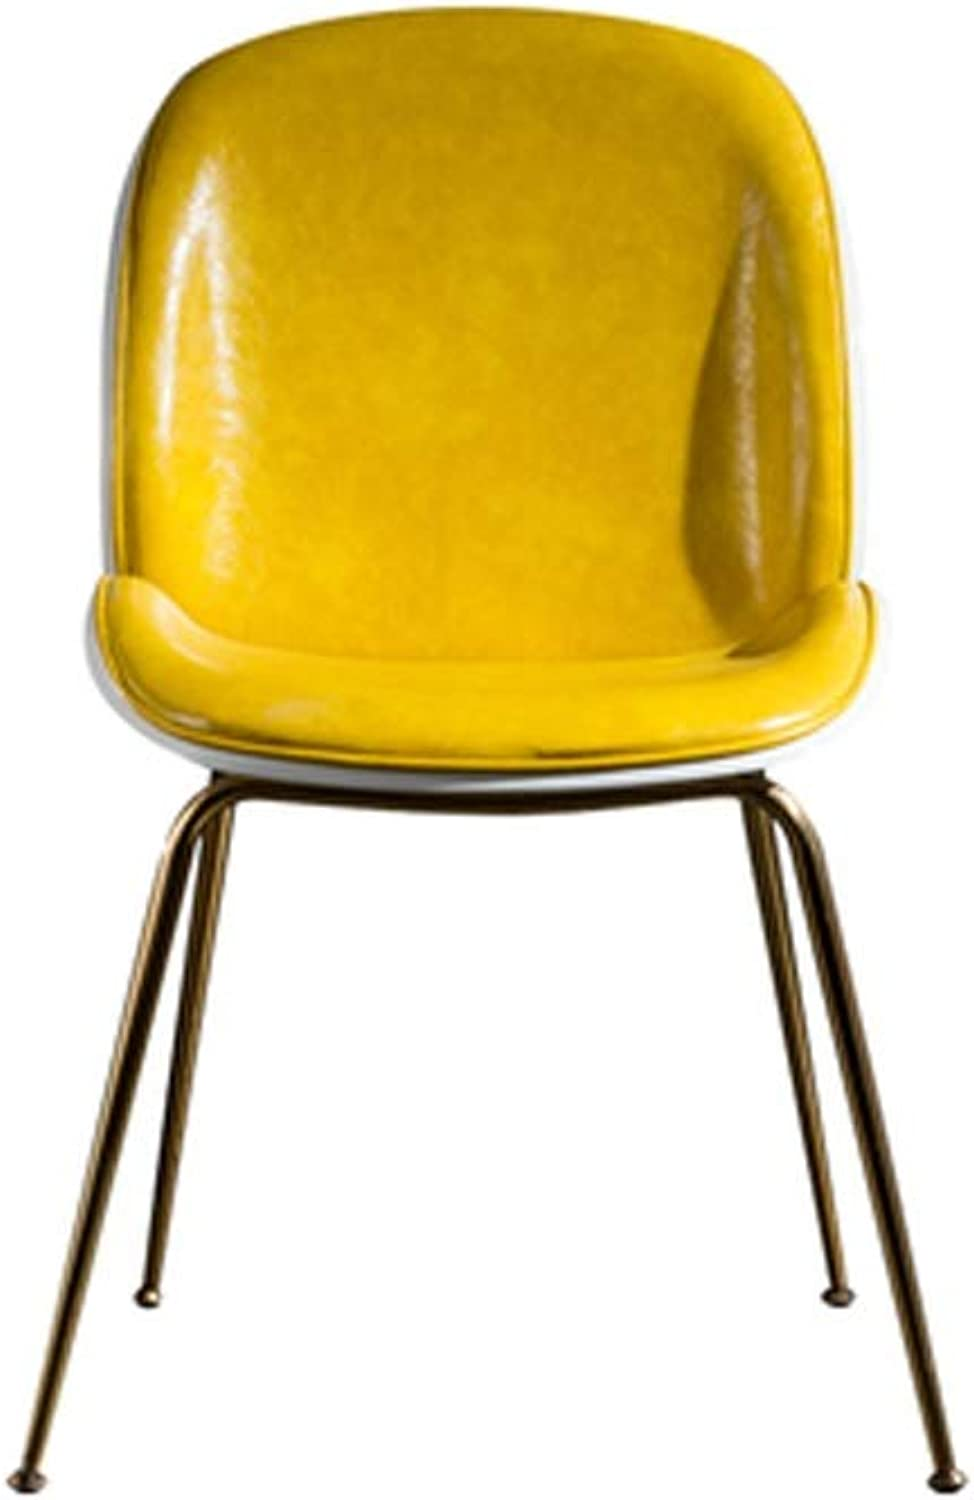 Barstool Nordic bar Stool Home PU Wrought Iron with backrest 3 colors 2 Sizes (color   Yellow, Size   75cm)